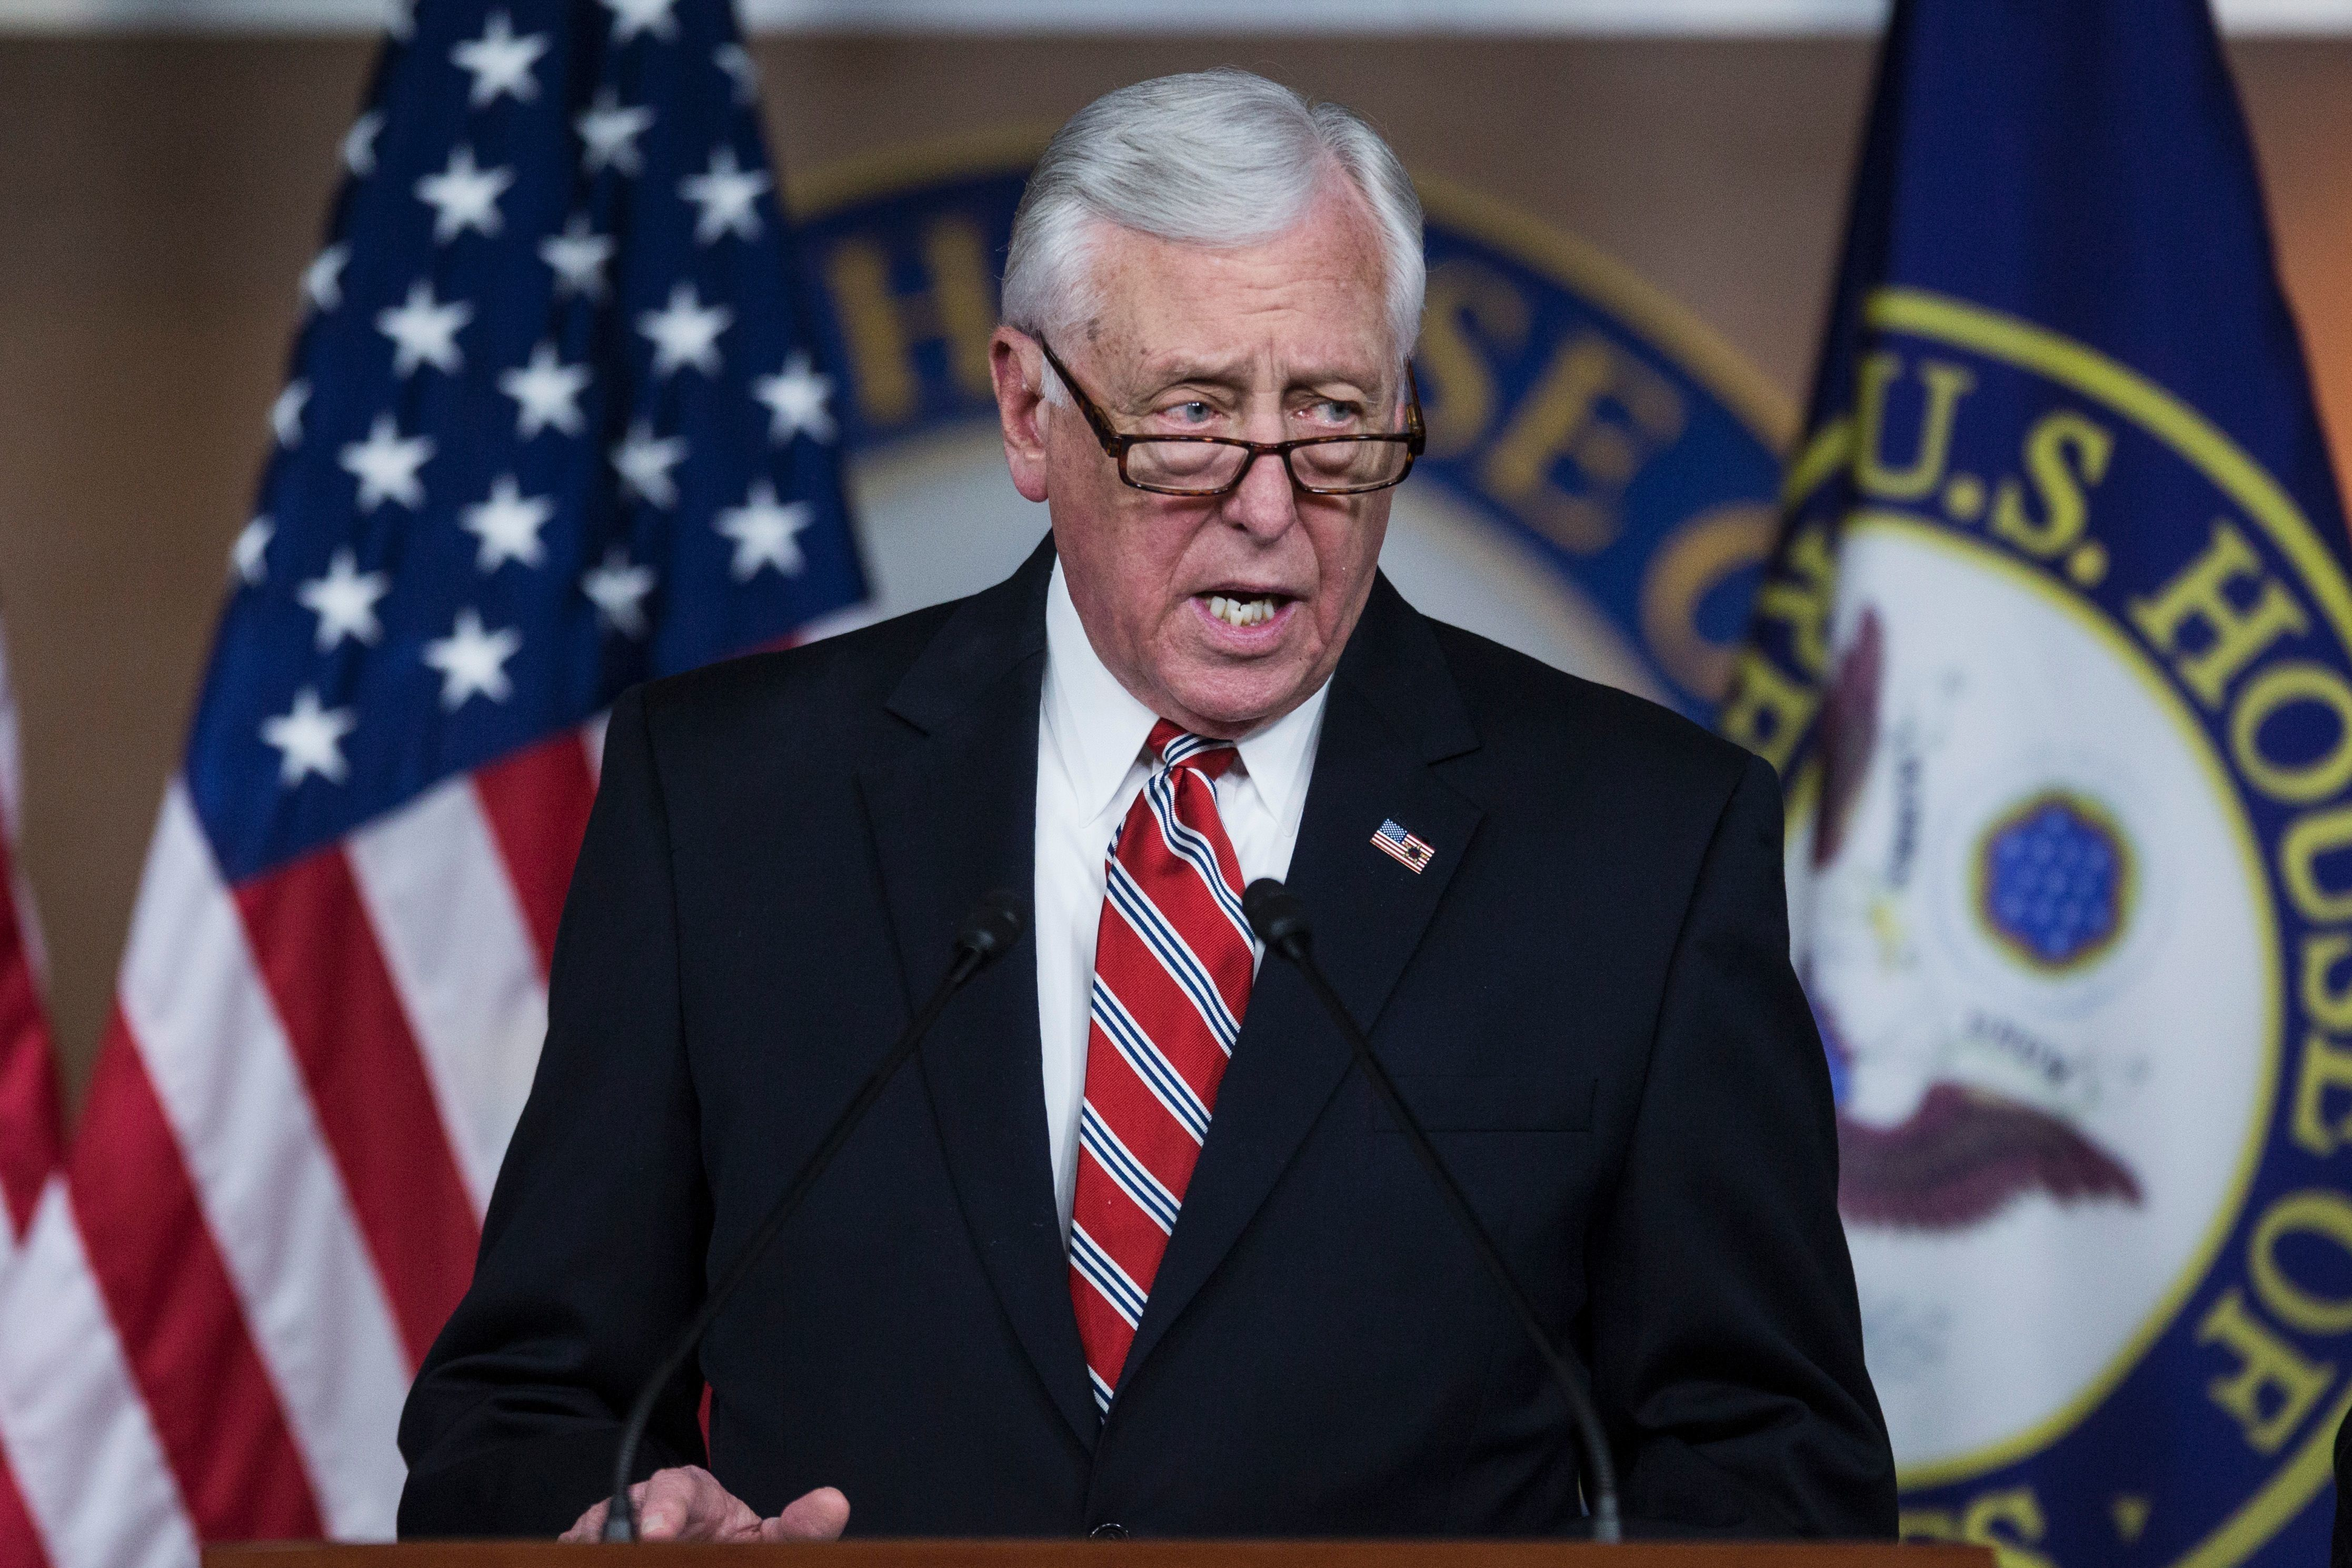 House Minority Whip Steny Hoyer (D-MD) speaks during a news conference discussing Russian sanctions on Capitol Hill February 15, 2017 in Washington, DC.   / AFP / ZACH GIBSON        (Photo credit should read ZACH GIBSON/AFP/Getty Images)